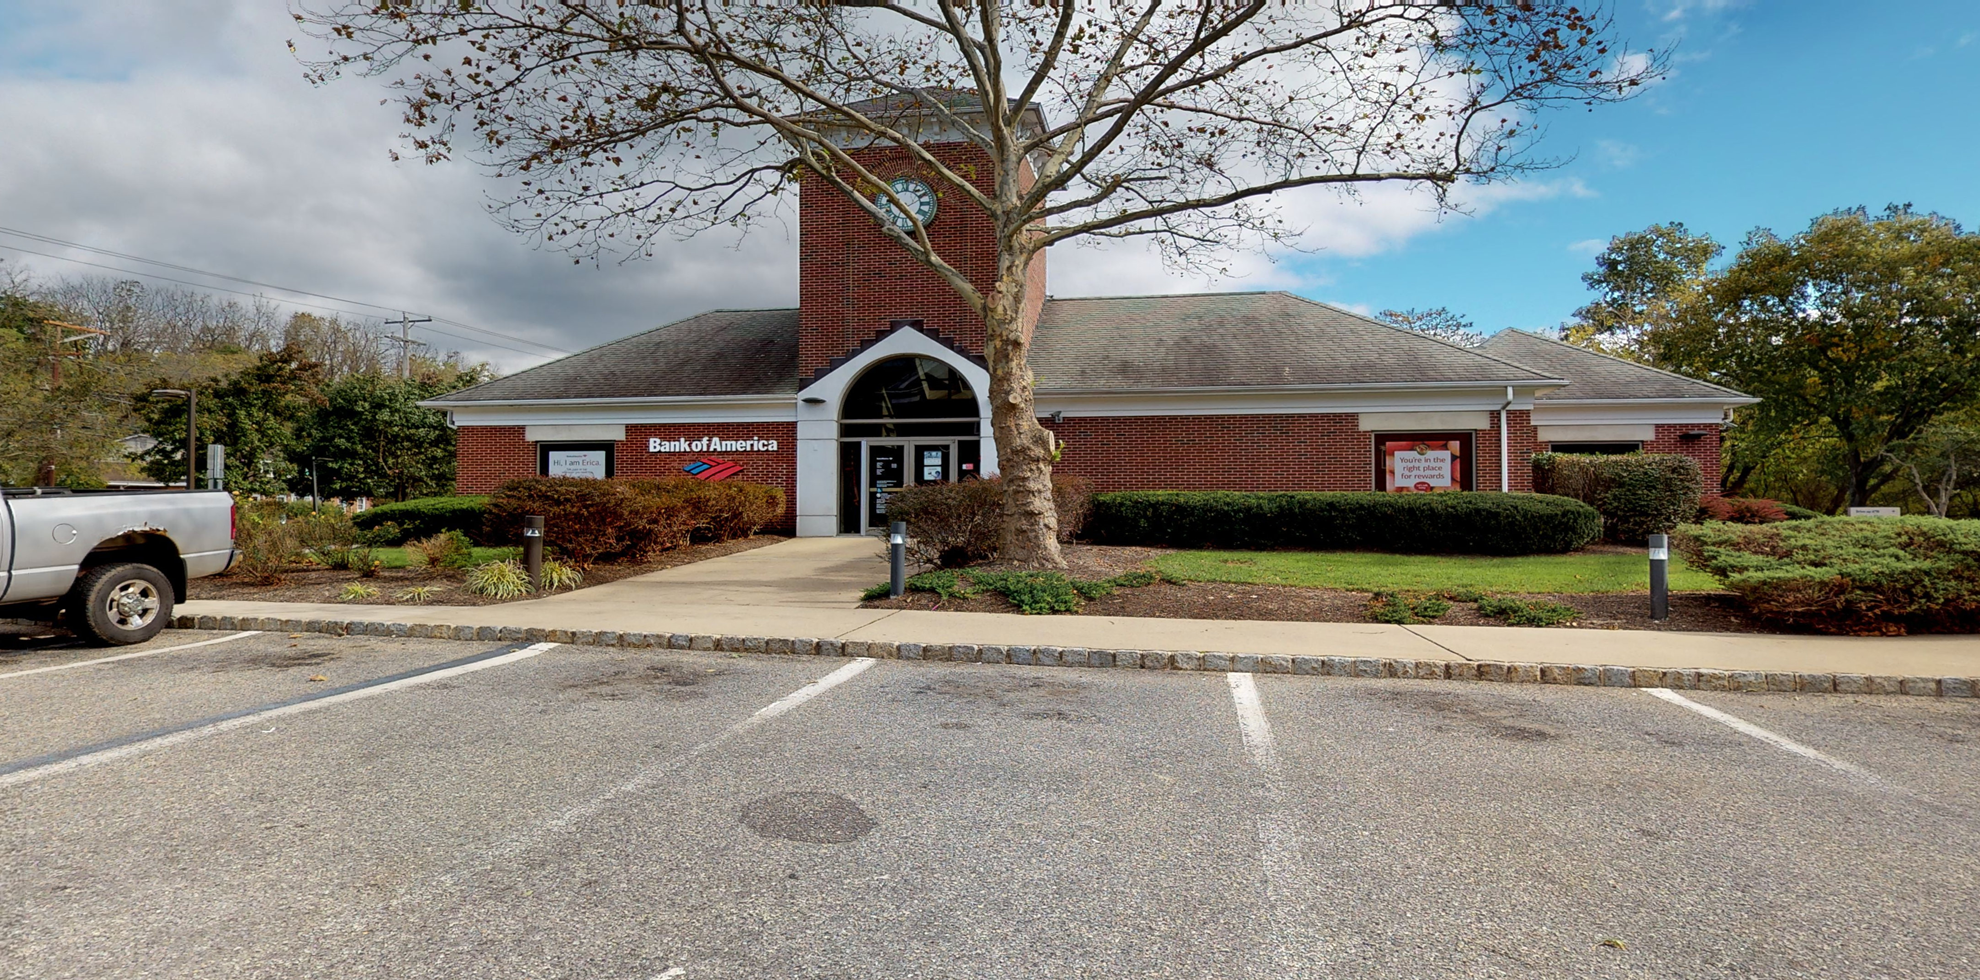 Bank of America financial center with drive-thru ATM   50 Route 173, Clinton, NJ 08809